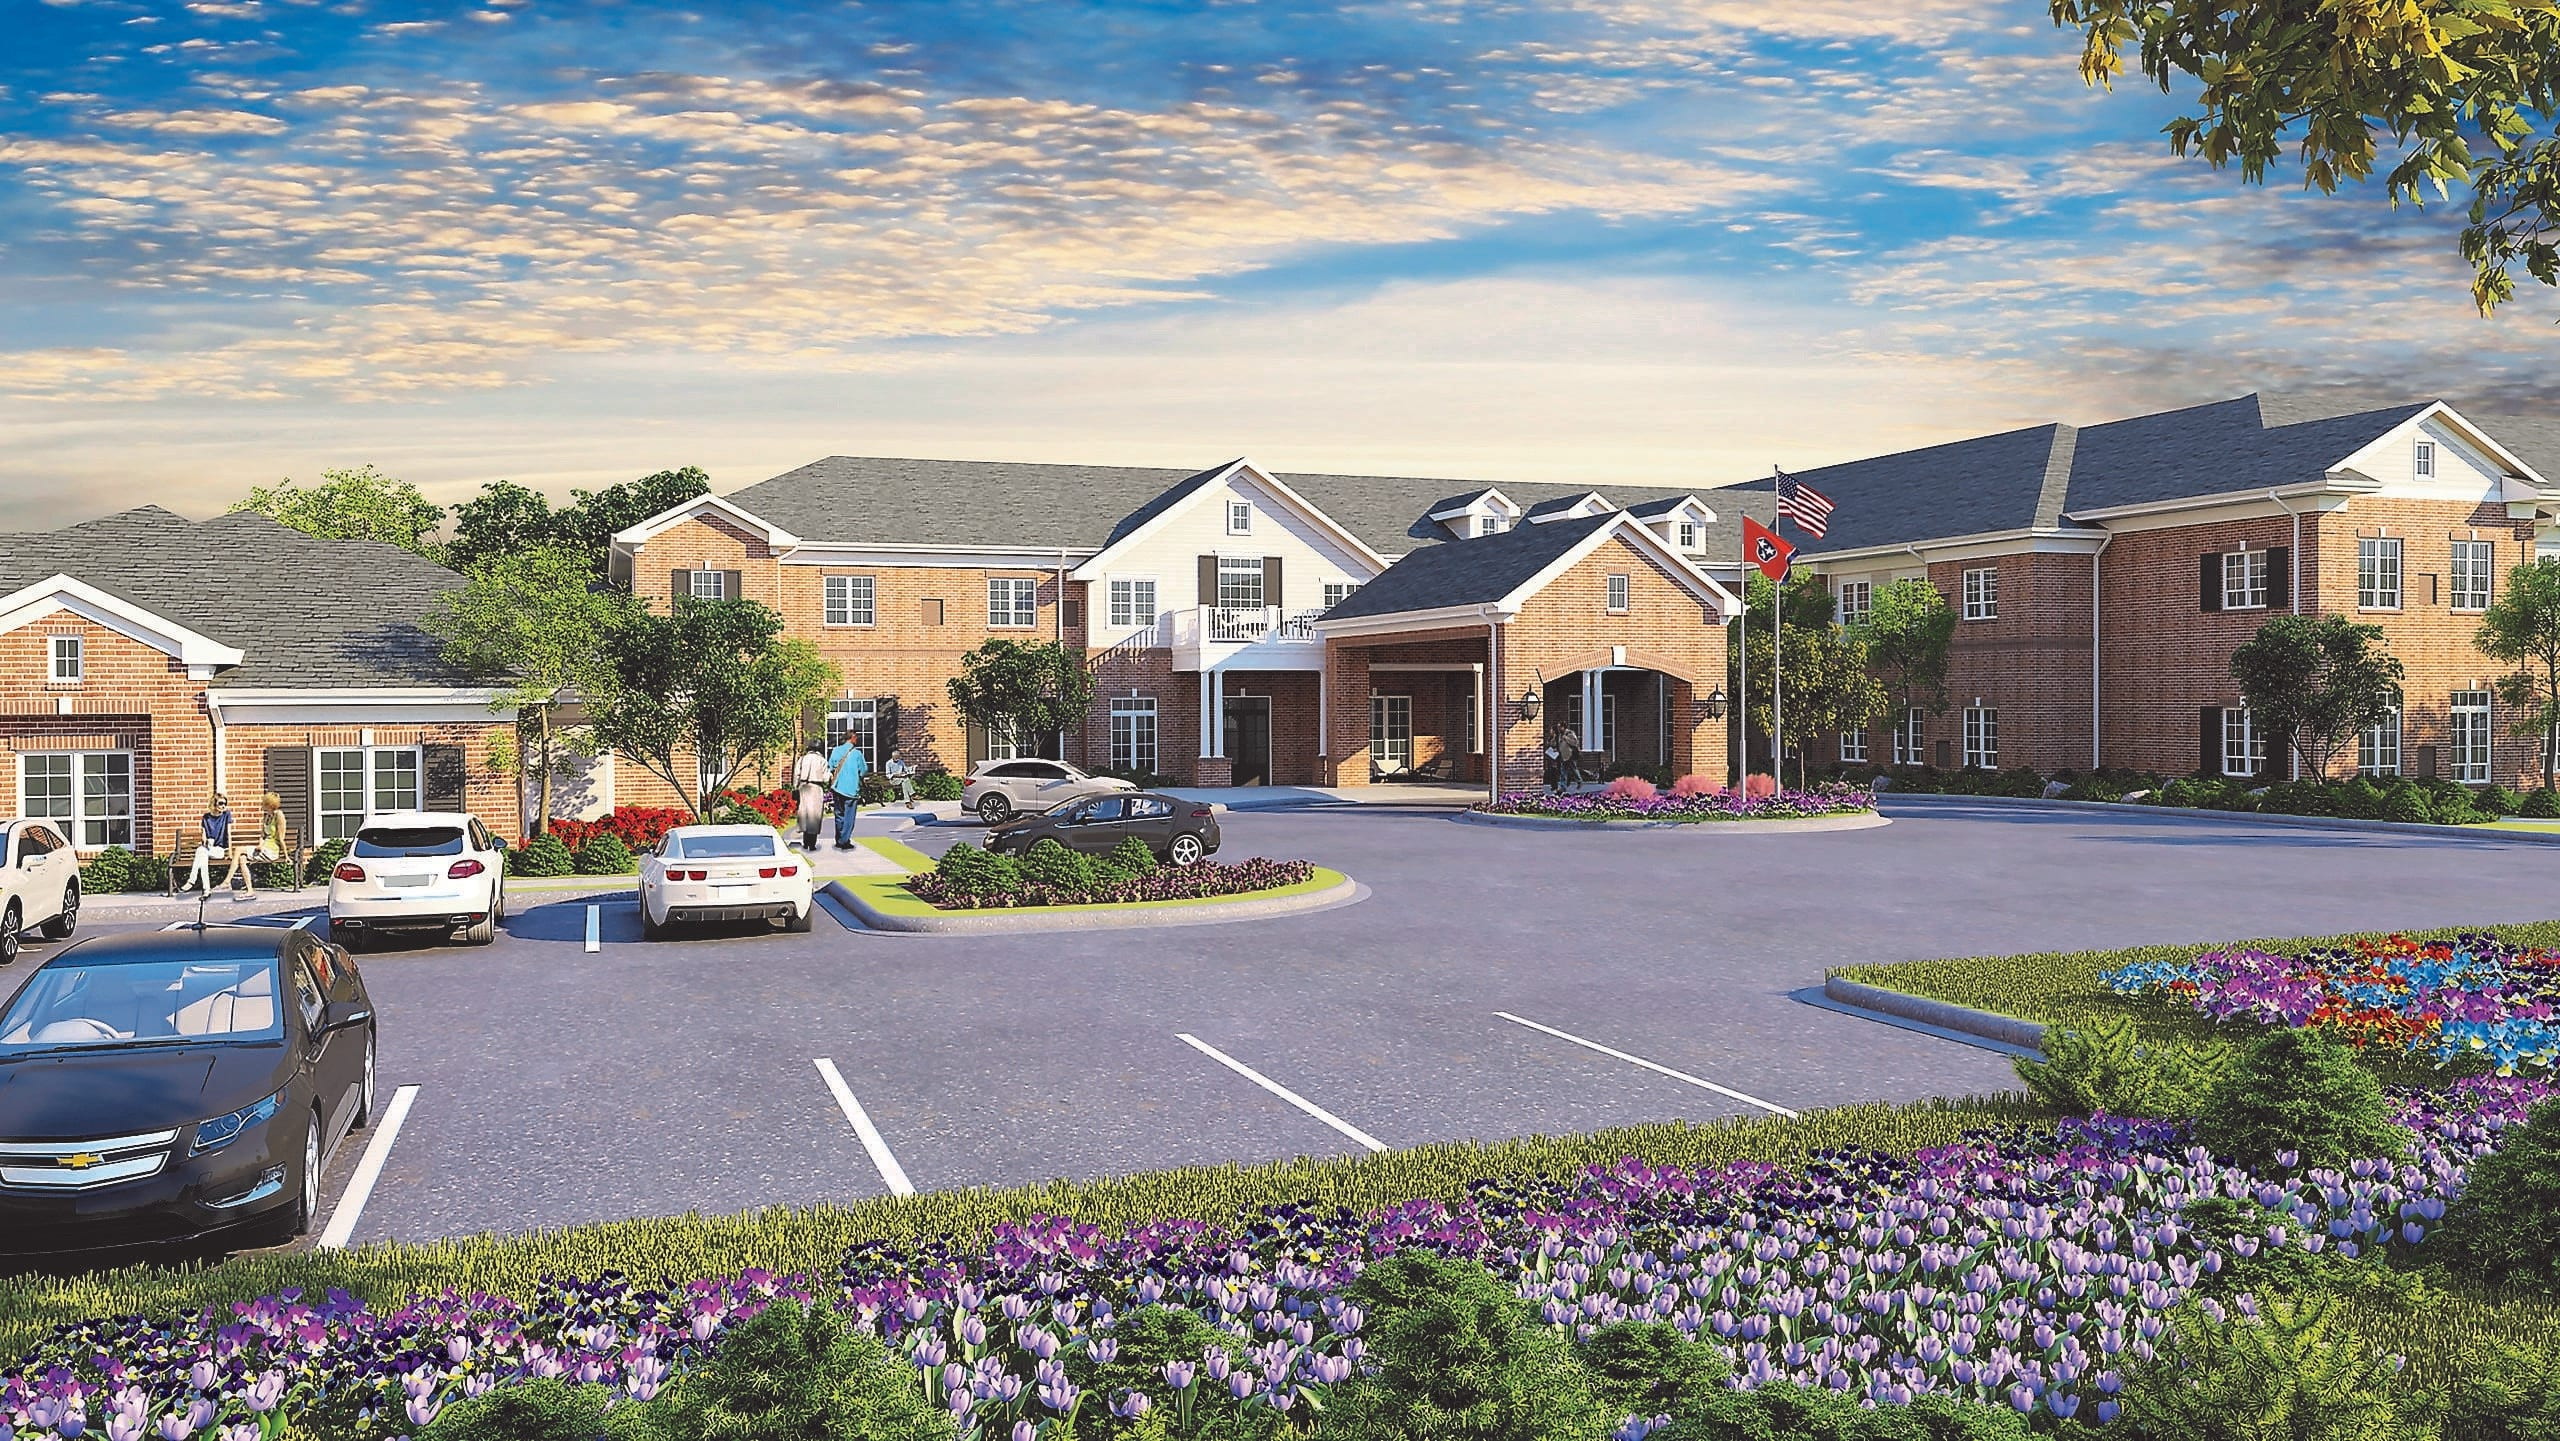 Photo 1 of Capstone Senior Living at Station Camp (Opening Early 2021)